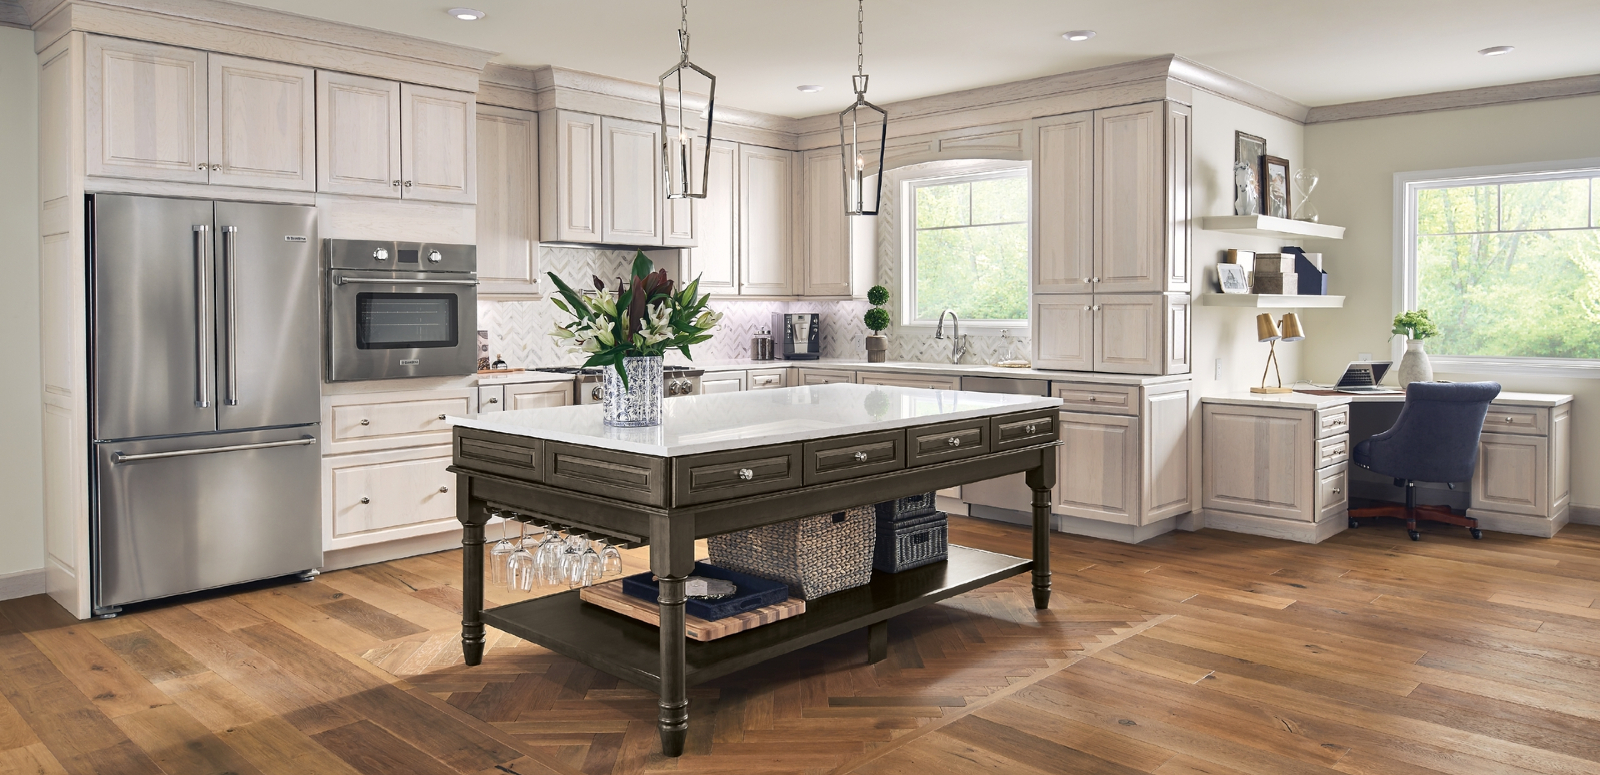 Kraftmaid Beautiful Cabinets For Kitchen Bathroom Designs